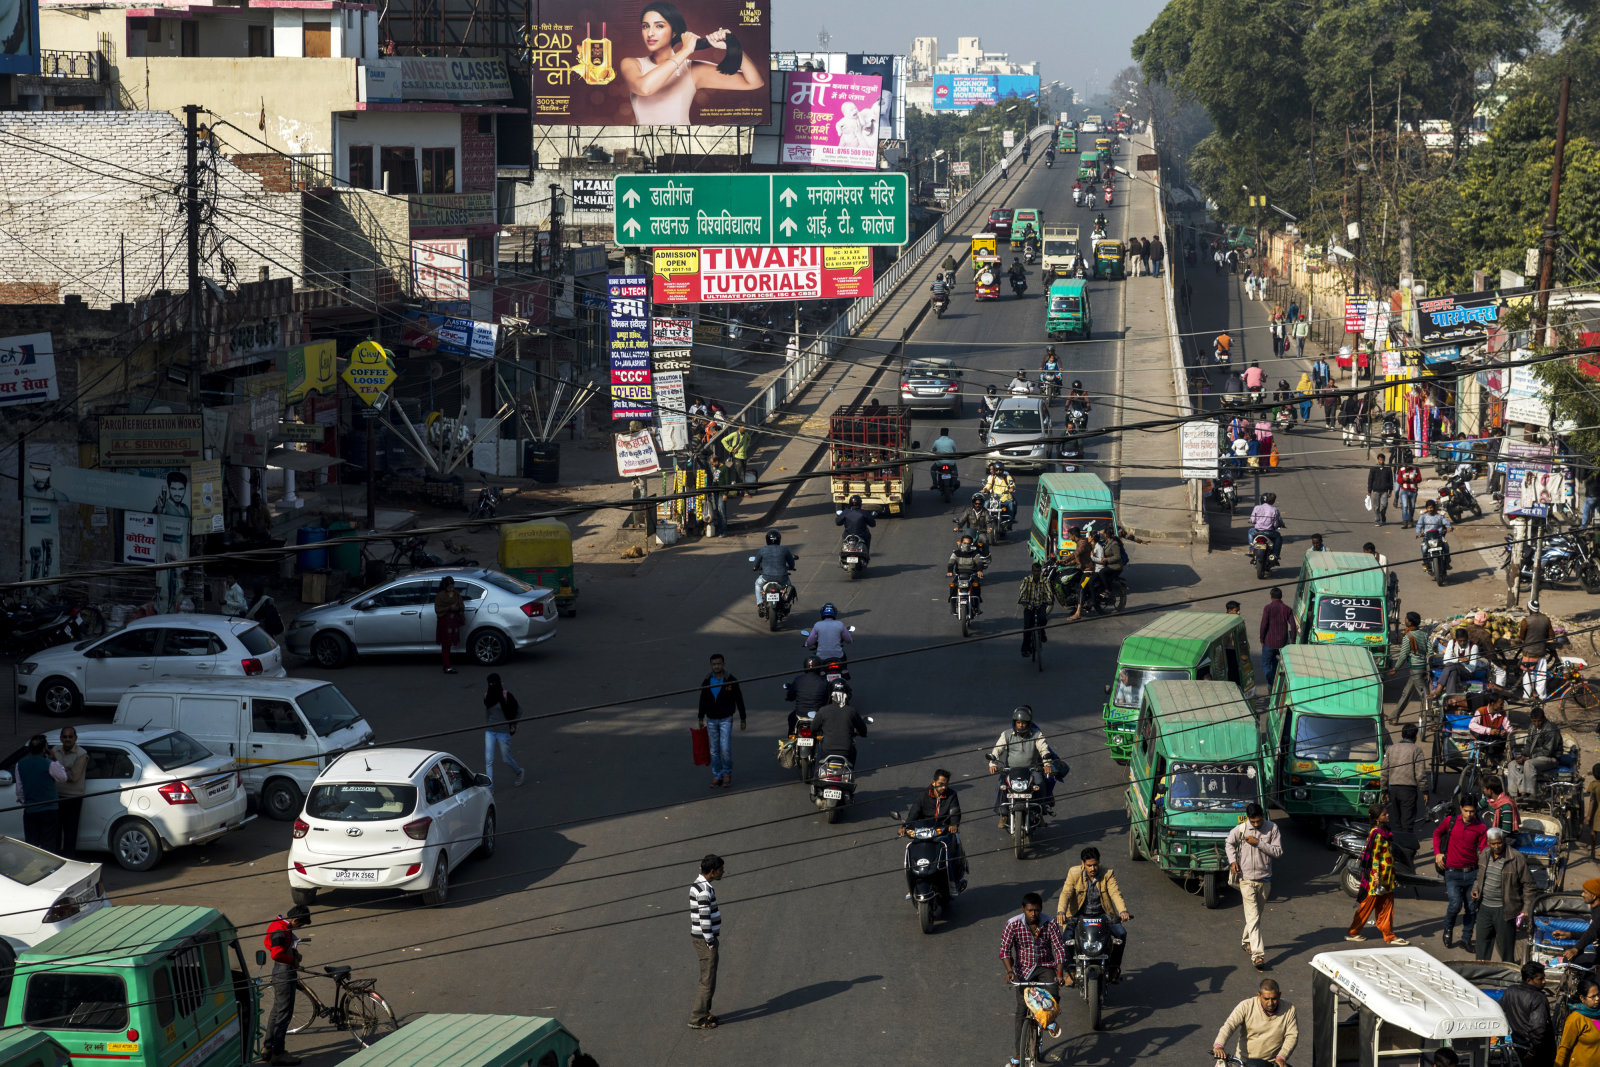 Vehicles and pedestrians pass through an intersection in Lucknow, Uttar Pradesh, India, on Tuesday, February 14, 2017. The success of the Samajwadi government's infrastructure projects has allowed them to hijack Indian Prime Minister Narendra Modi's mantra of development. Now it's possible the Bharatiya Janata Party (BJP) could lose India's most important state election,that began on Feb. 11., endangering further economic reforms and sapping Modi's momentum ahead of the 2019 national elections. Photographer: Prashanth Vishwanathan/Bloomberg via Getty Images